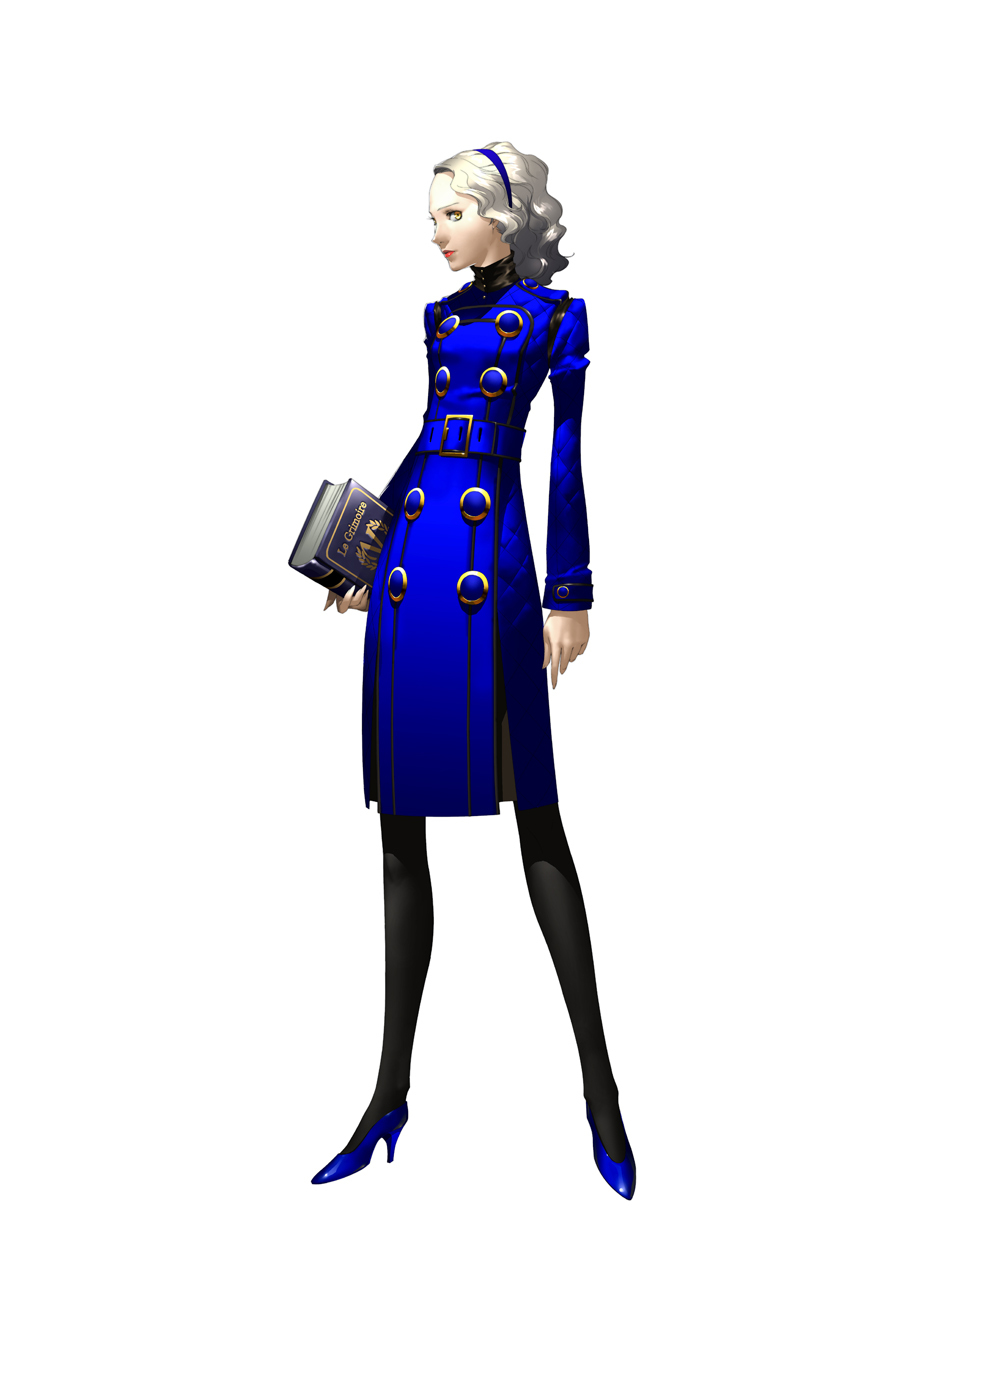 dress hairband high_heels highres lipstick long_hair makeup margaret official_art pantyhose persona persona_4 shigenori_soejima shoes silver_hair soejima_shigenori wavy_hair yellow_eyes